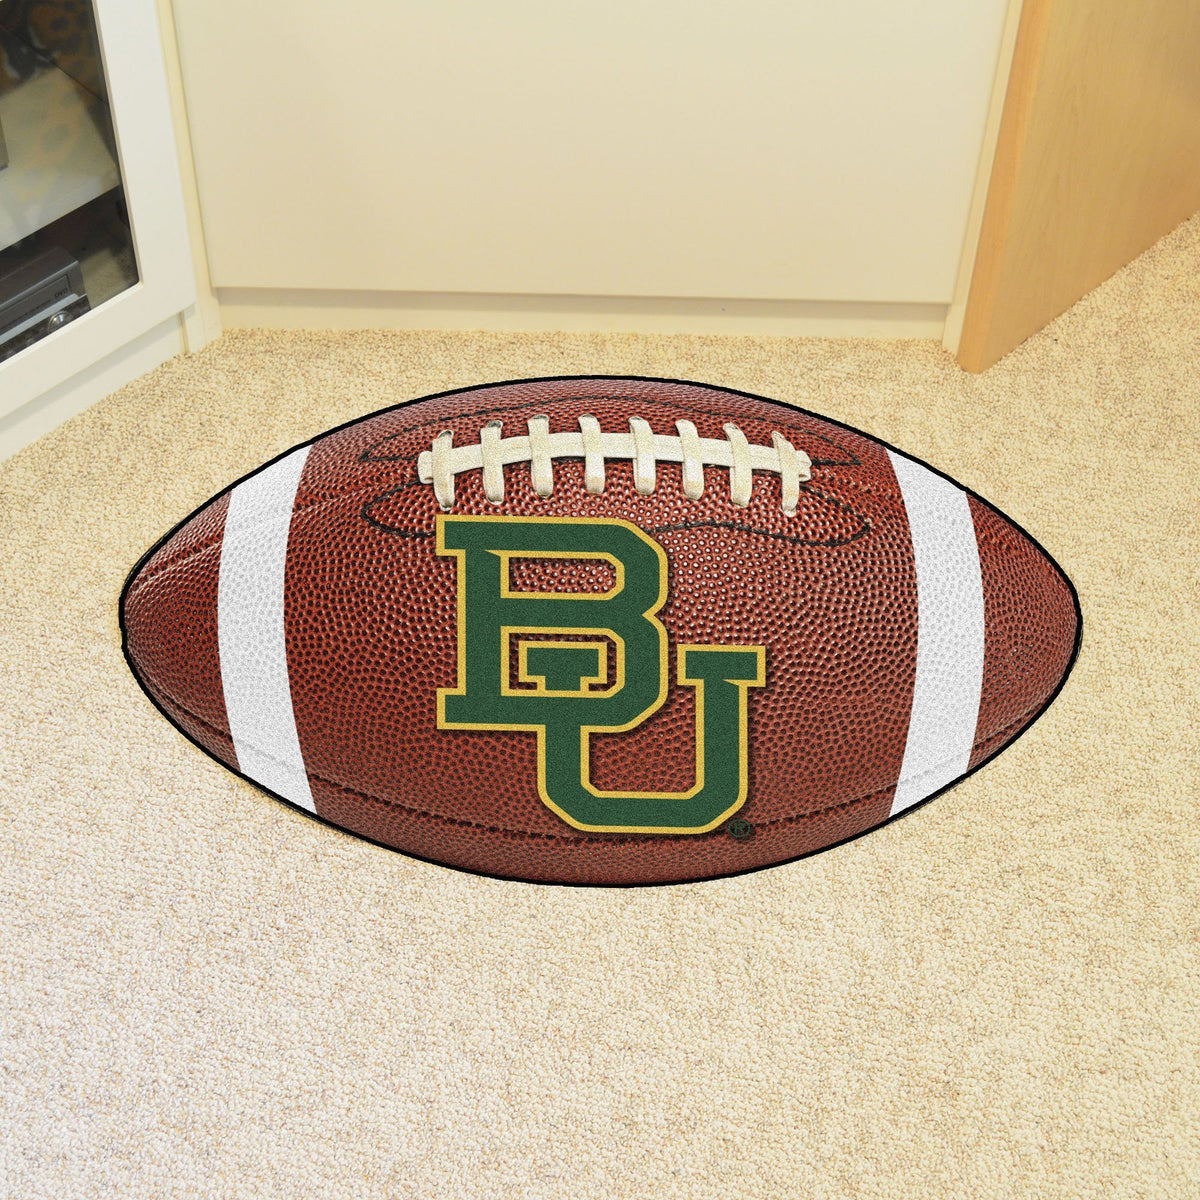 Collegiate - Football Mat: A - K Collegiate Mats, Rectangular Mats, Football Mat, Collegiate, Home Fan Mats Baylor